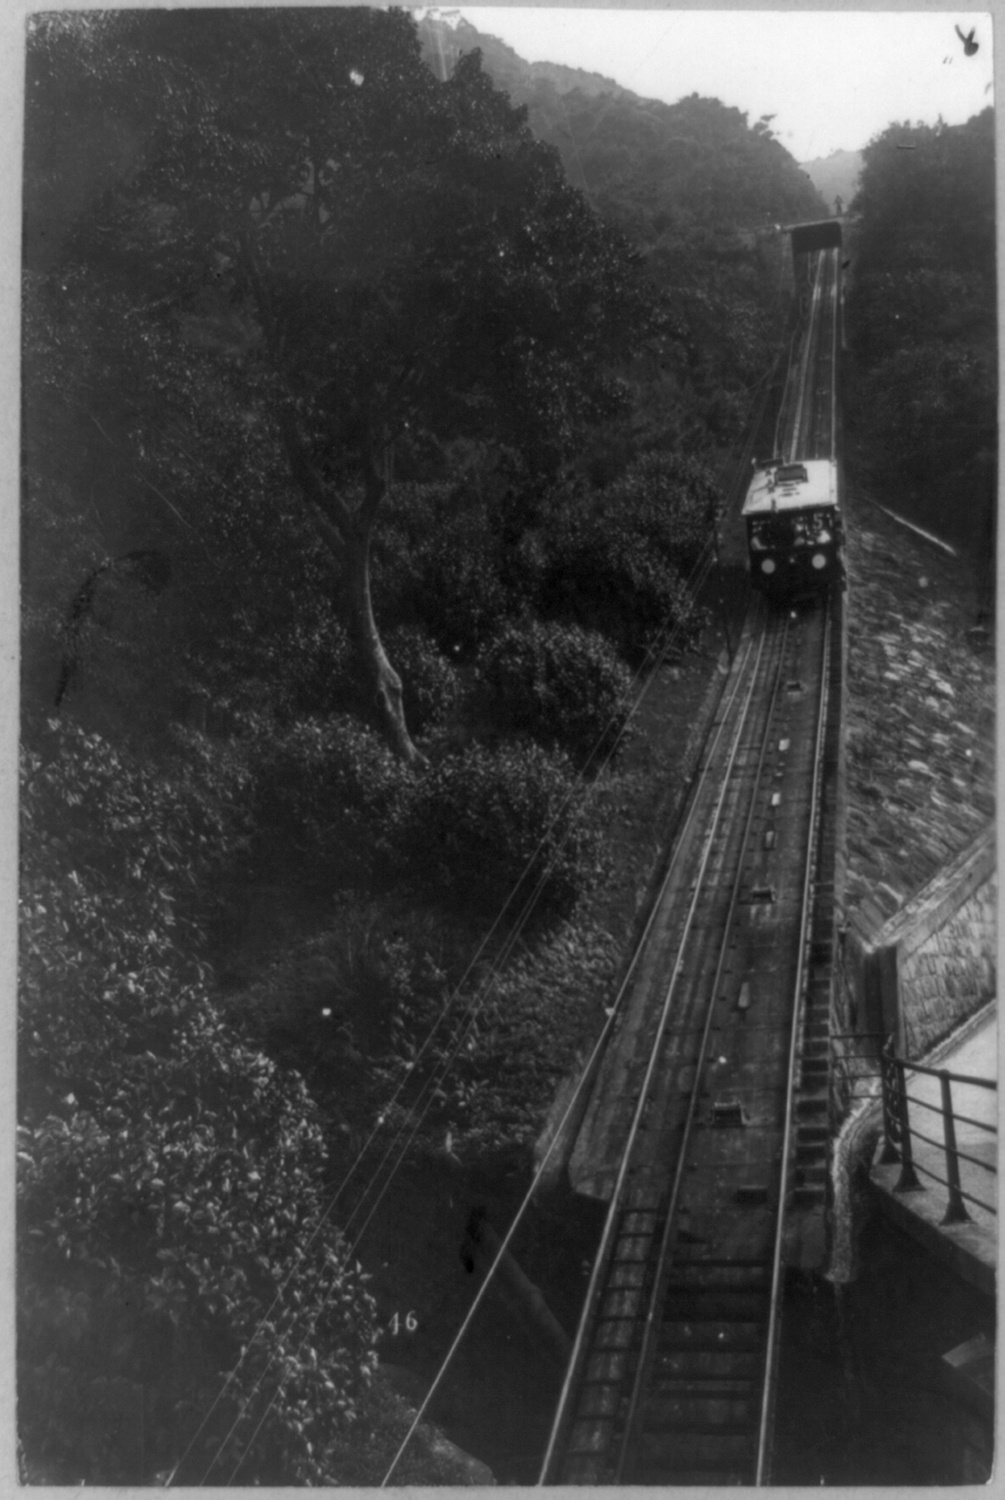 Tramway on Victoria Peak, c. 1900. Courtesy of the Library of Congress.